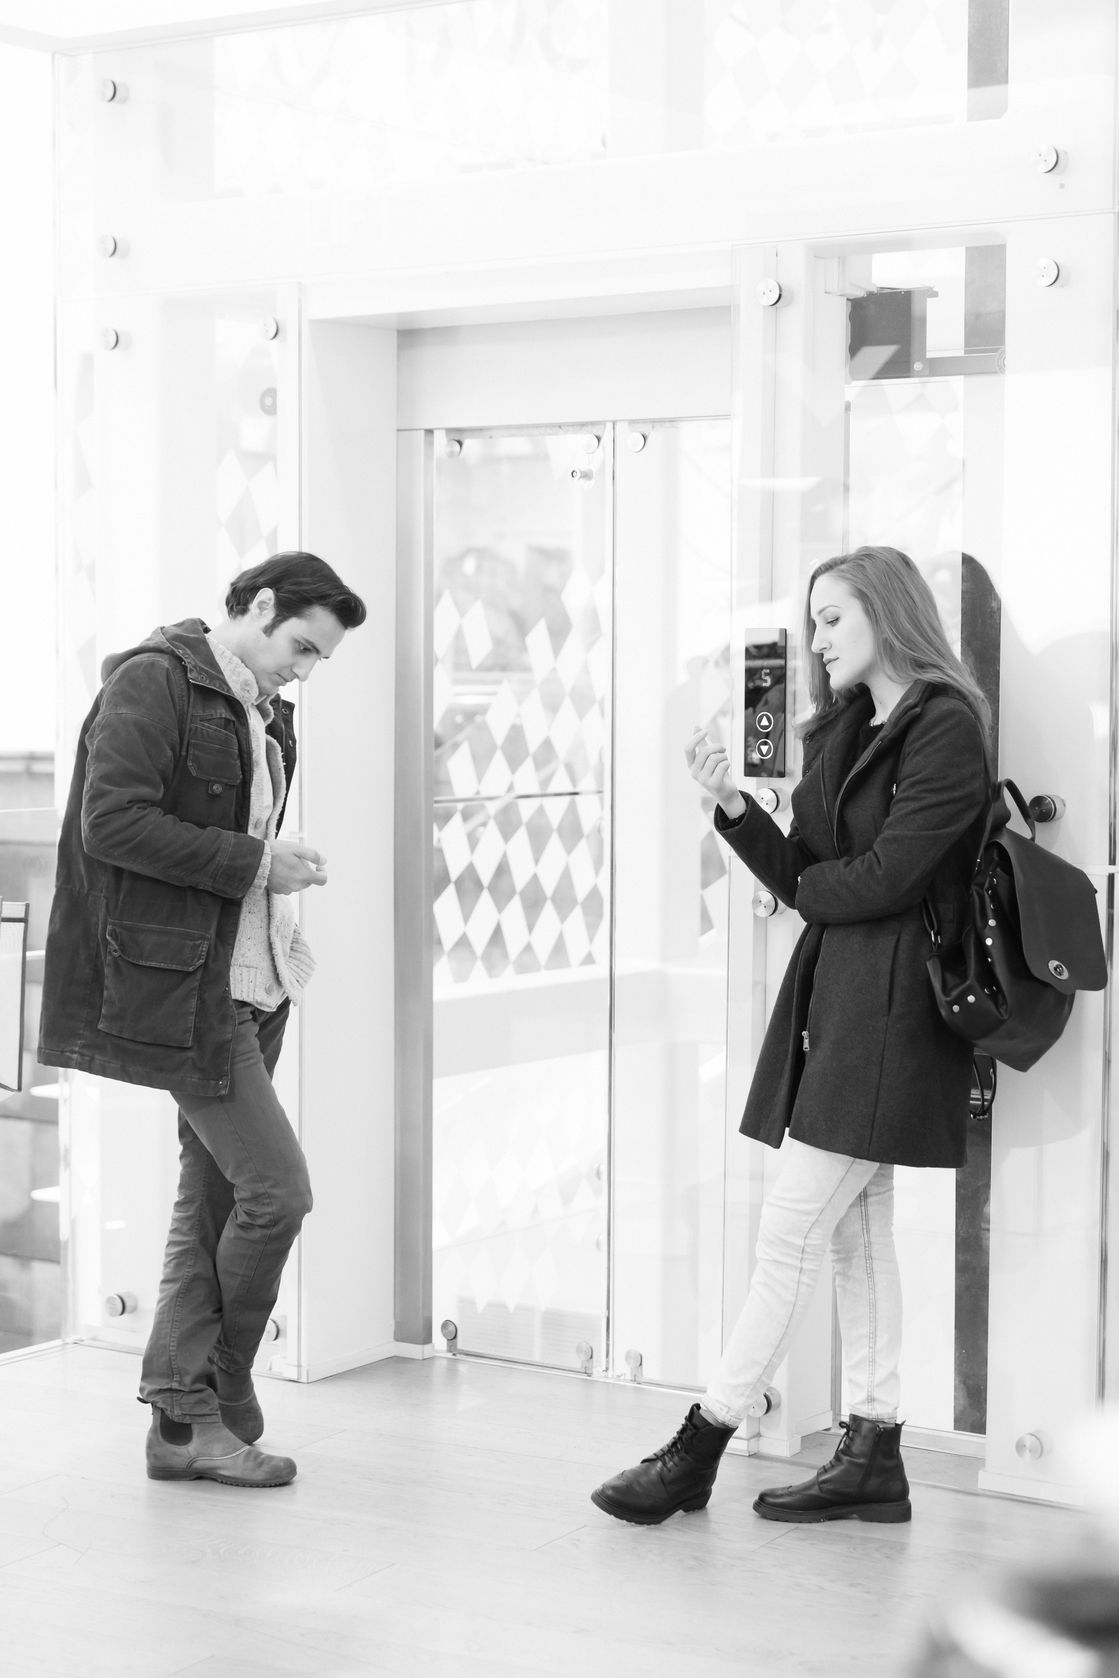 Man and woman awkwardly waiting for an elevator